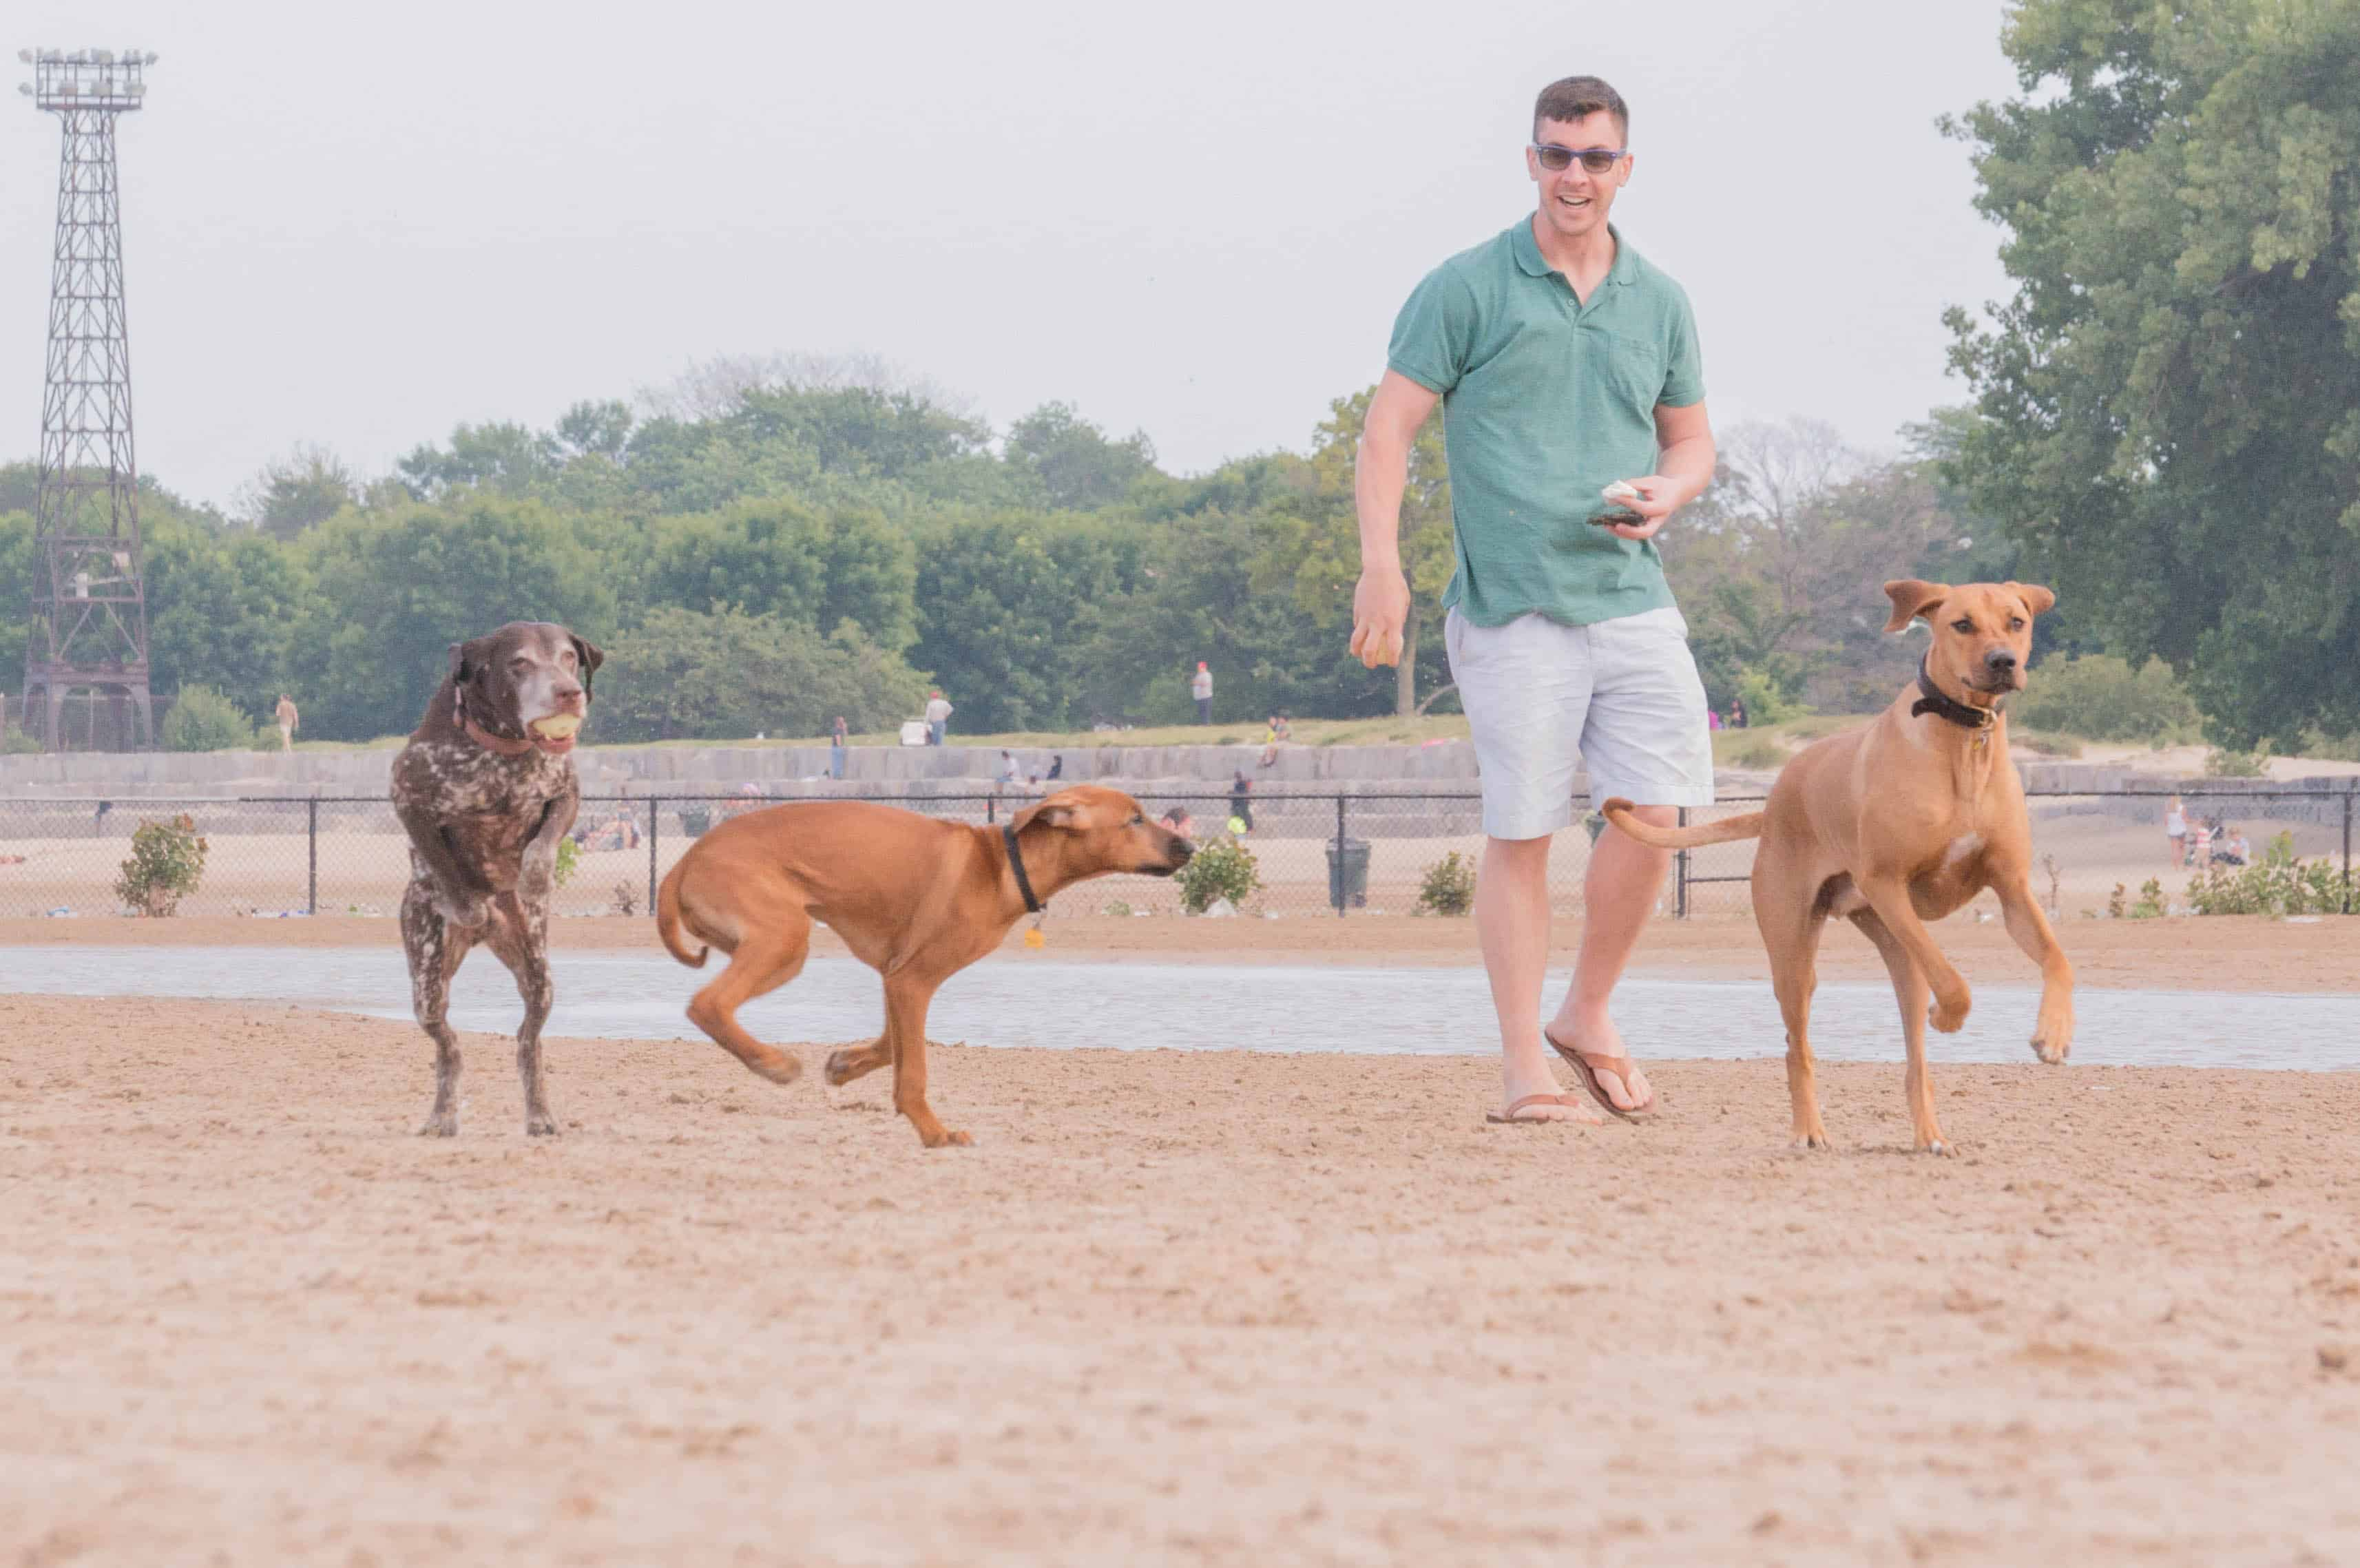 Montrose dog beach, chicago, dog-friendly, marking our territory, chicago